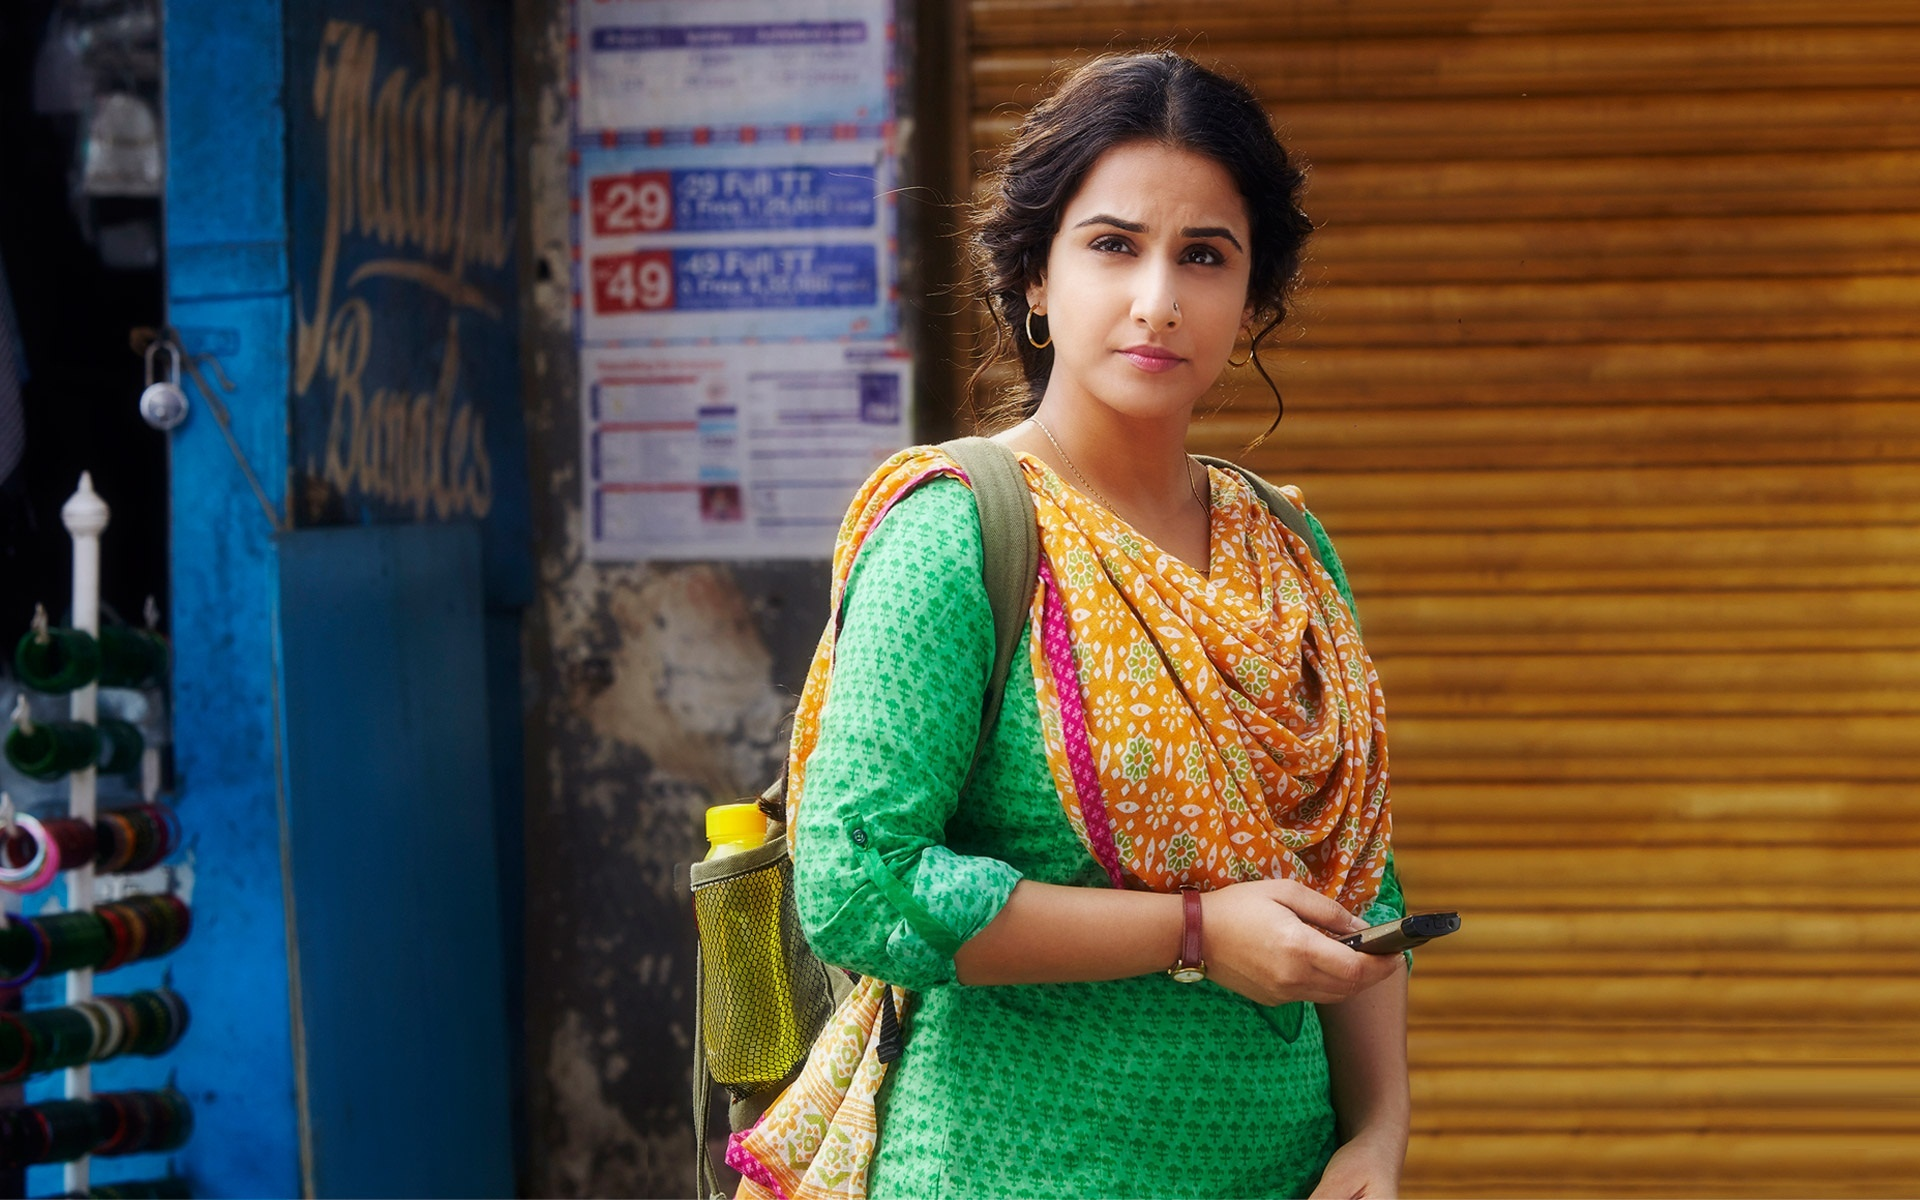 vidya balan in bobby jasoos wallpaper | hd wallpaper background